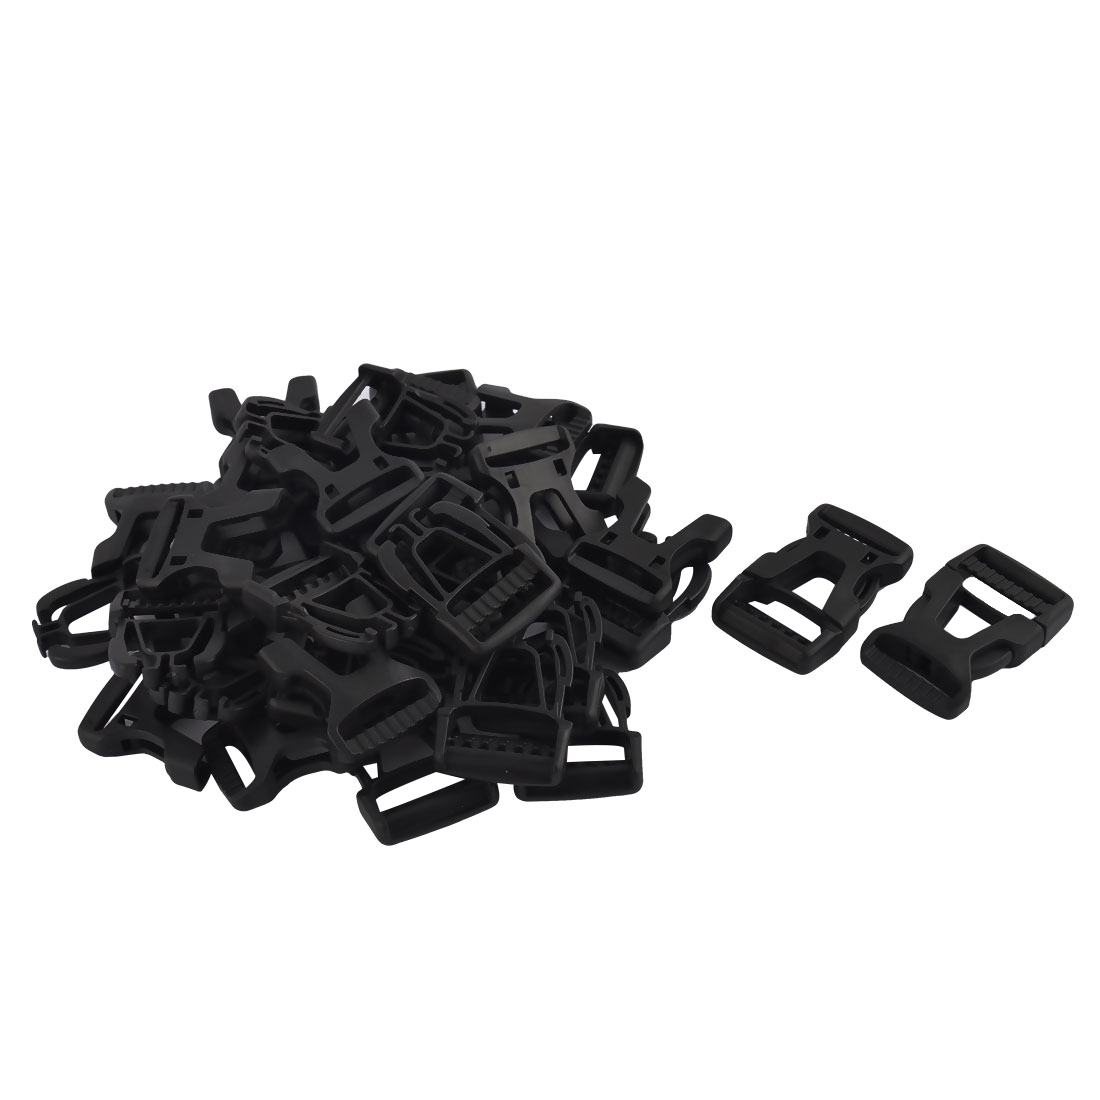 Suitcase Knapsack Strap Plastic Side Quick Release Buckles Black 26mm 20pcs